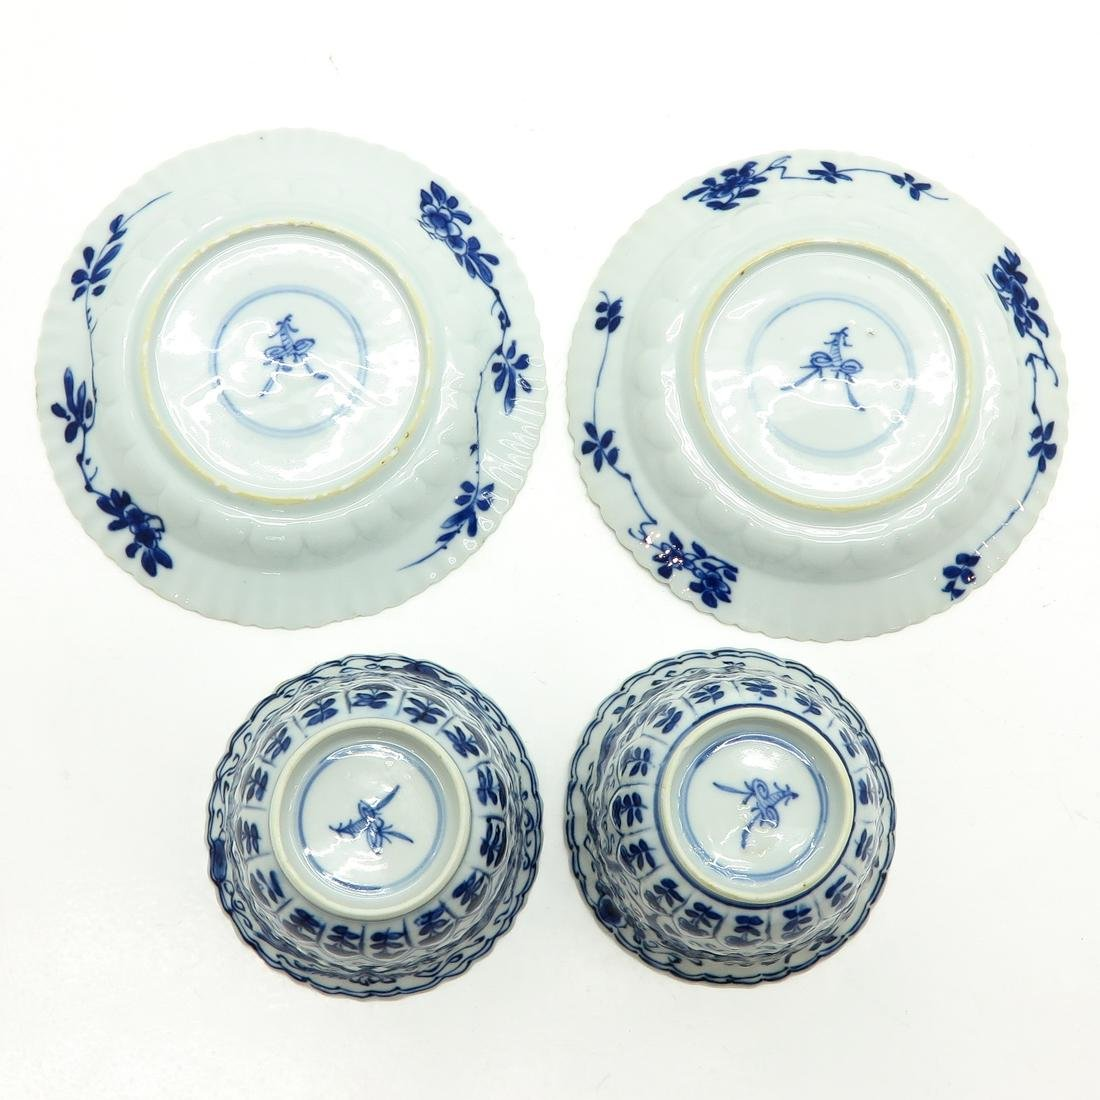 Lot of 2 Cups and Saucers - 6